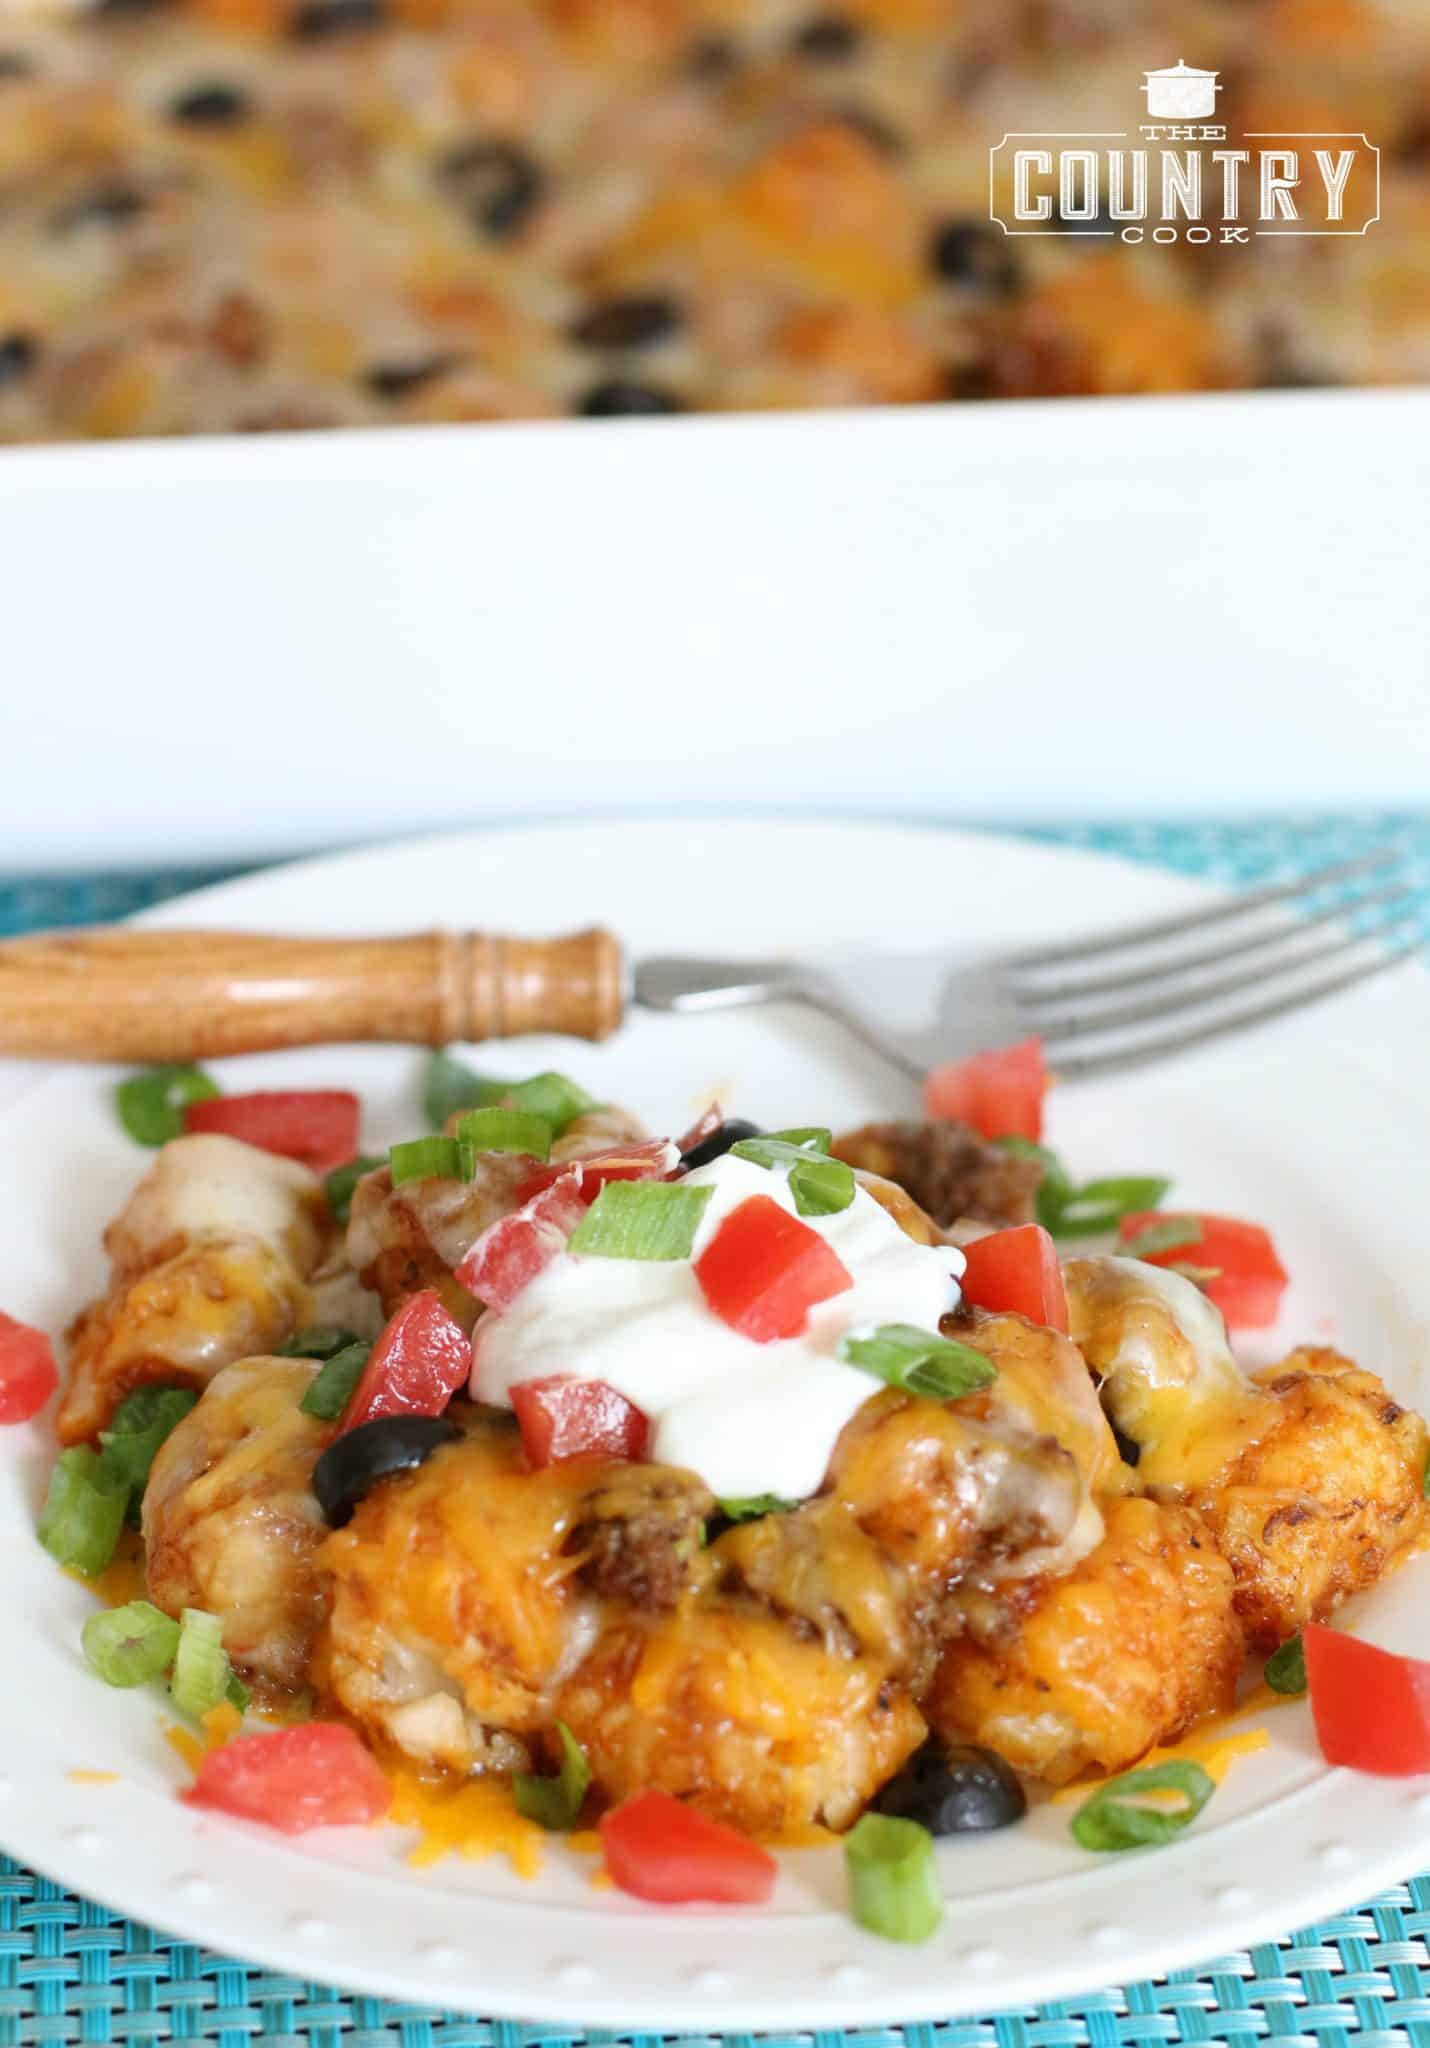 Tater Tot Enchilada Casserole served on a white plate, topped with sour cream, sliced green onions and diced tomatoes.